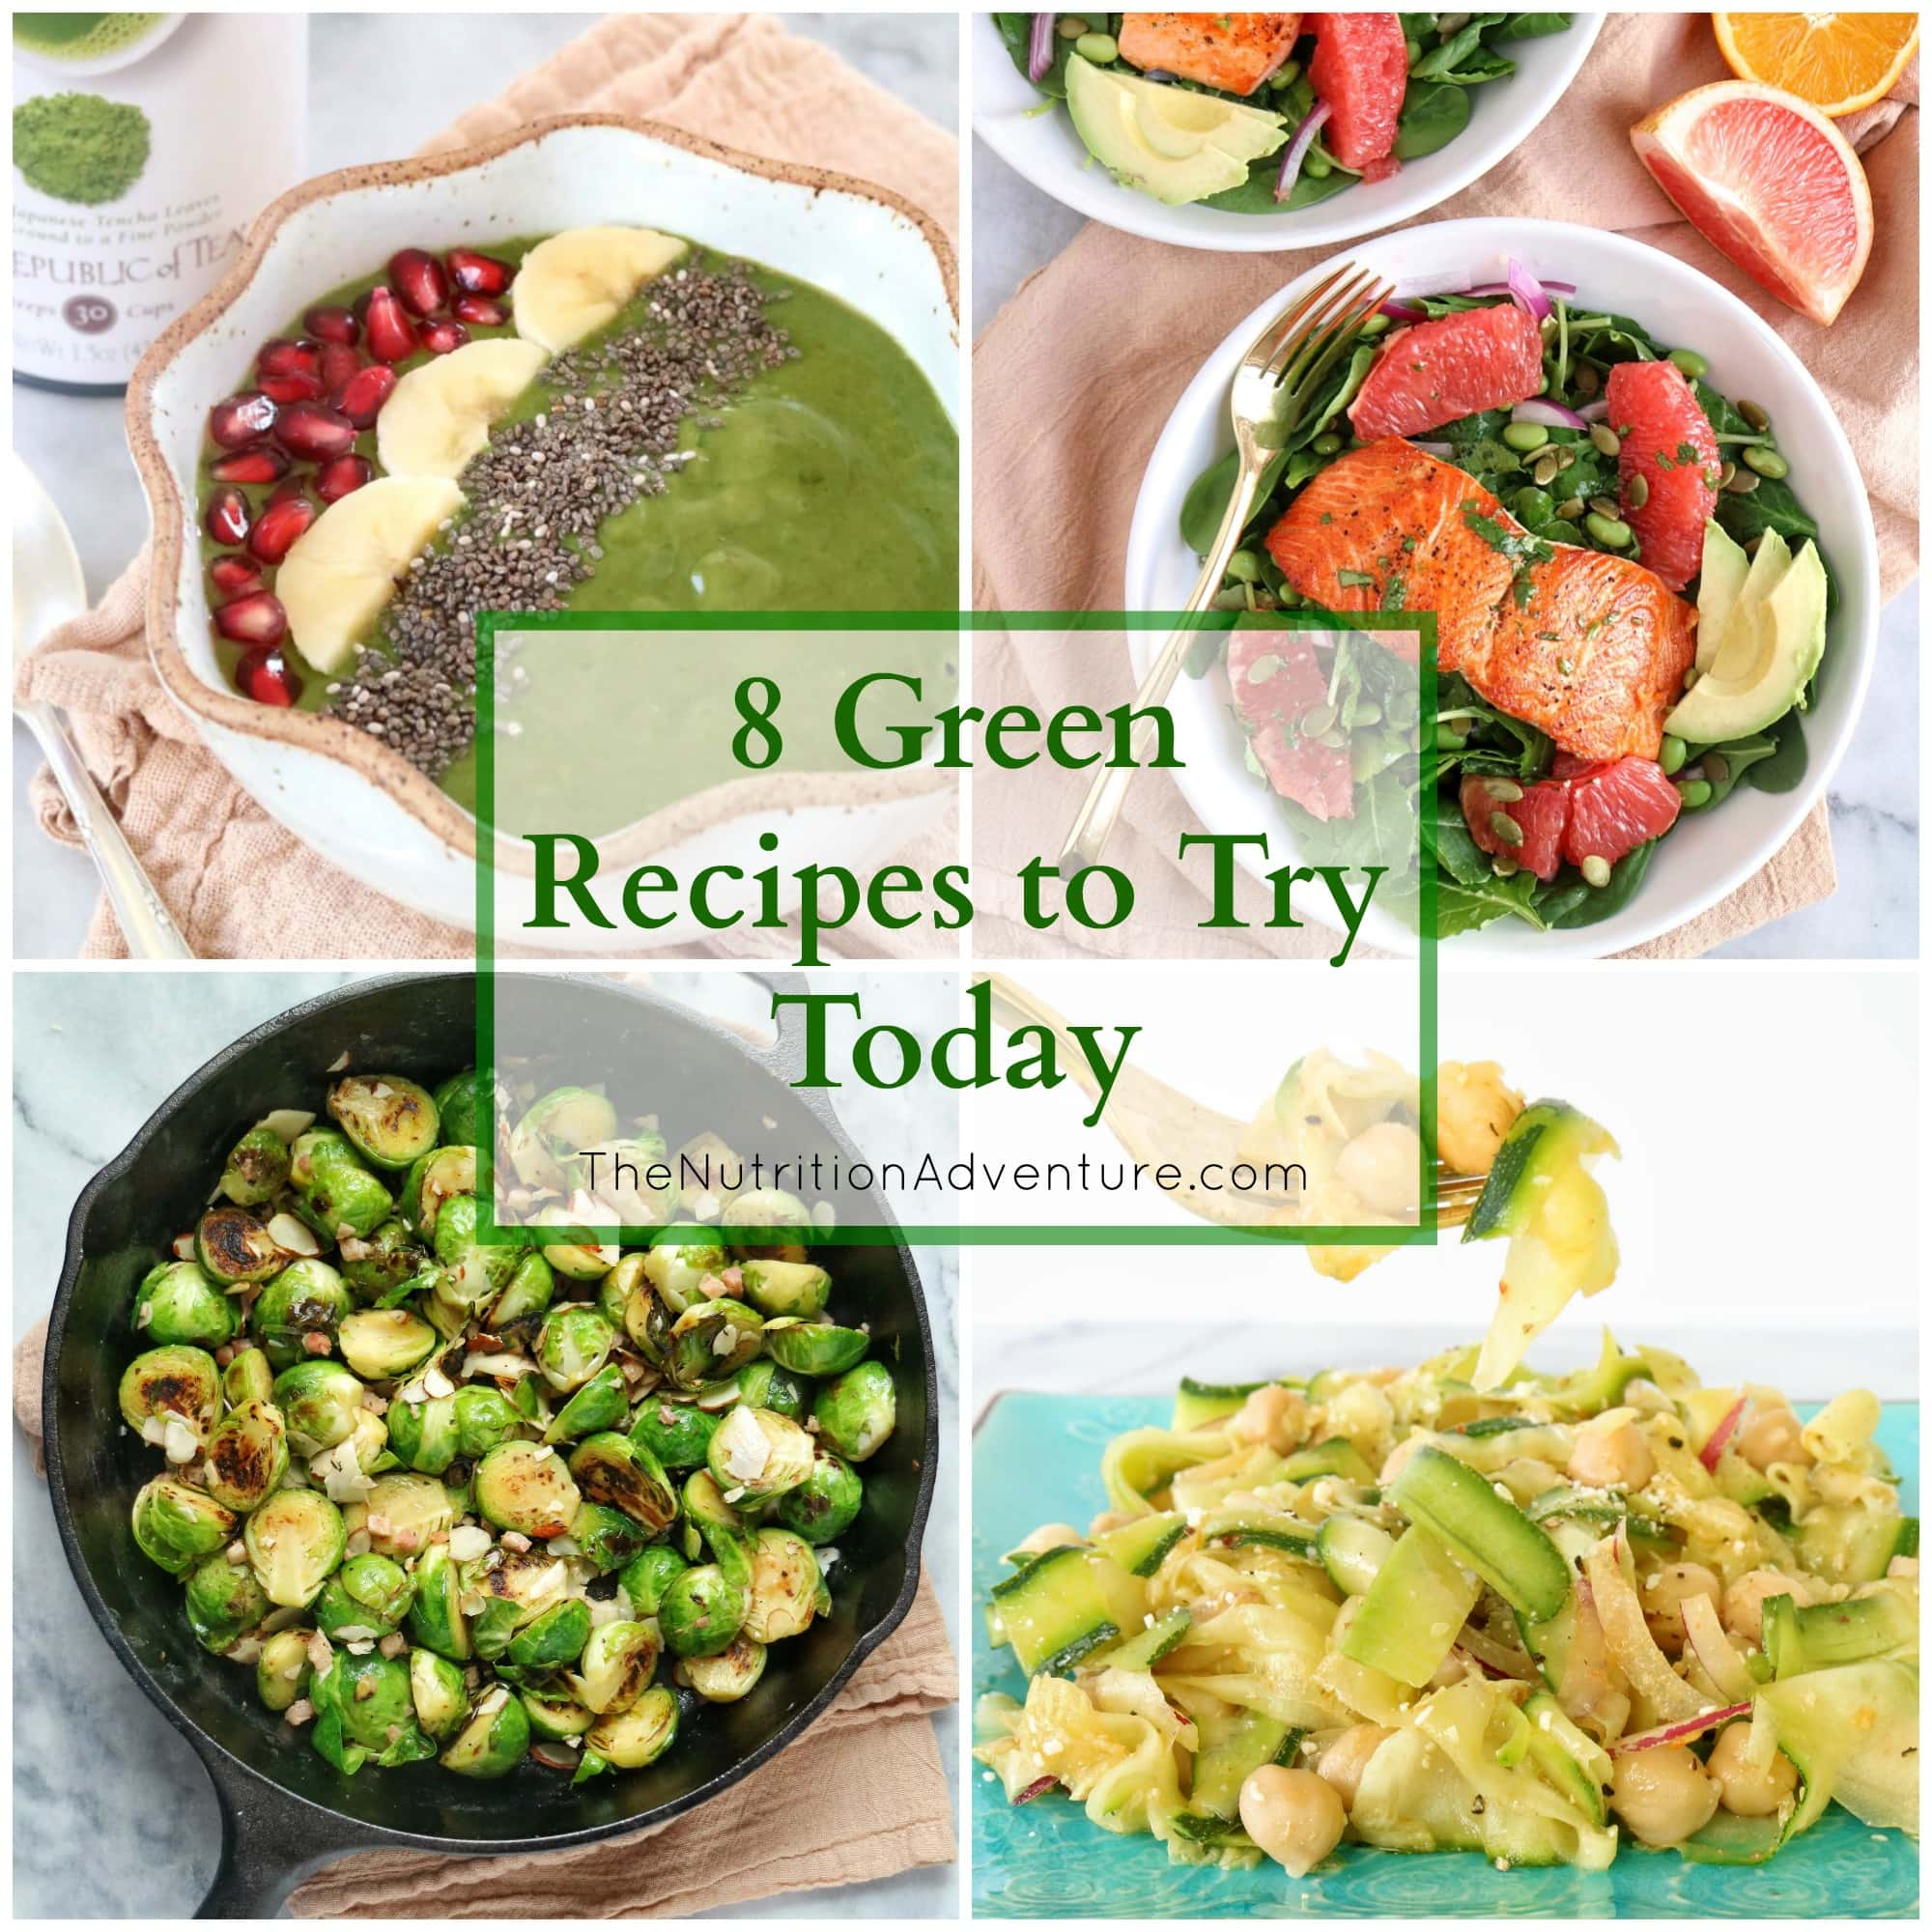 Eating Green + 8 Green Recipes to Try Today